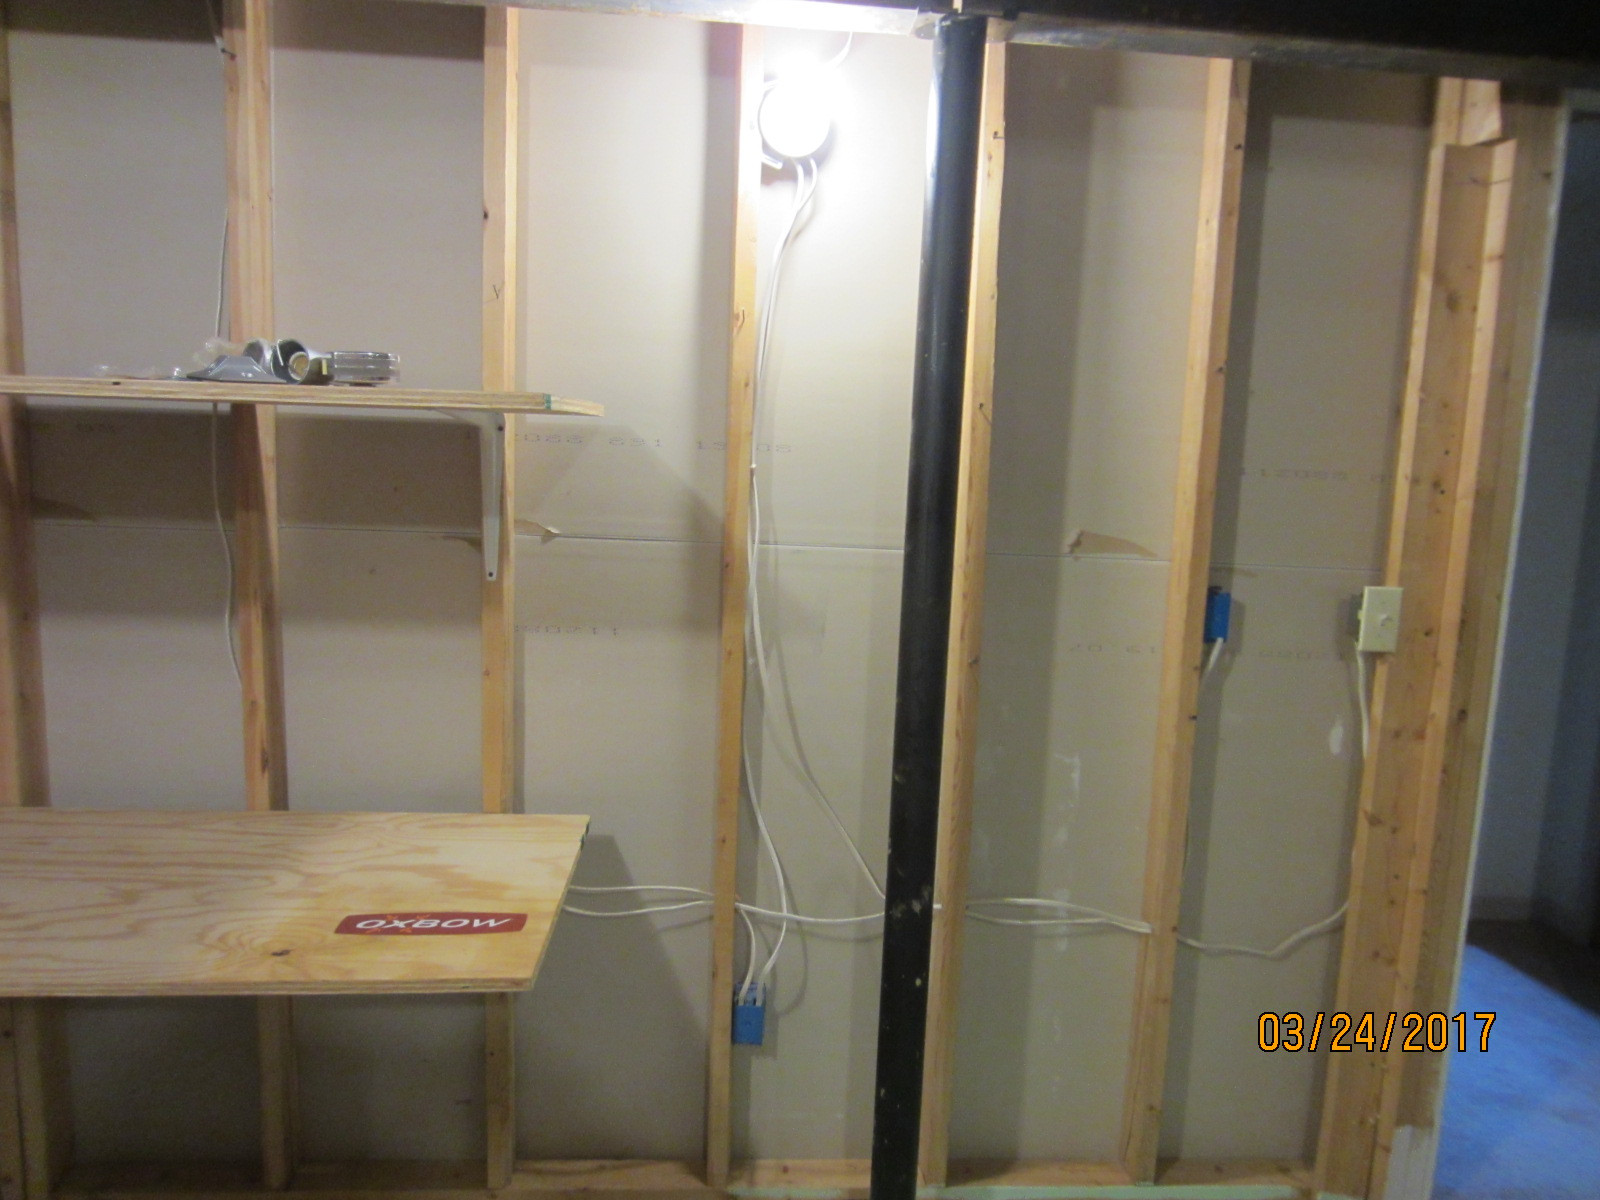 hight resolution of electrical do wires and electical boxes need to be protected on the un finished side of basement home improvement stack exchange